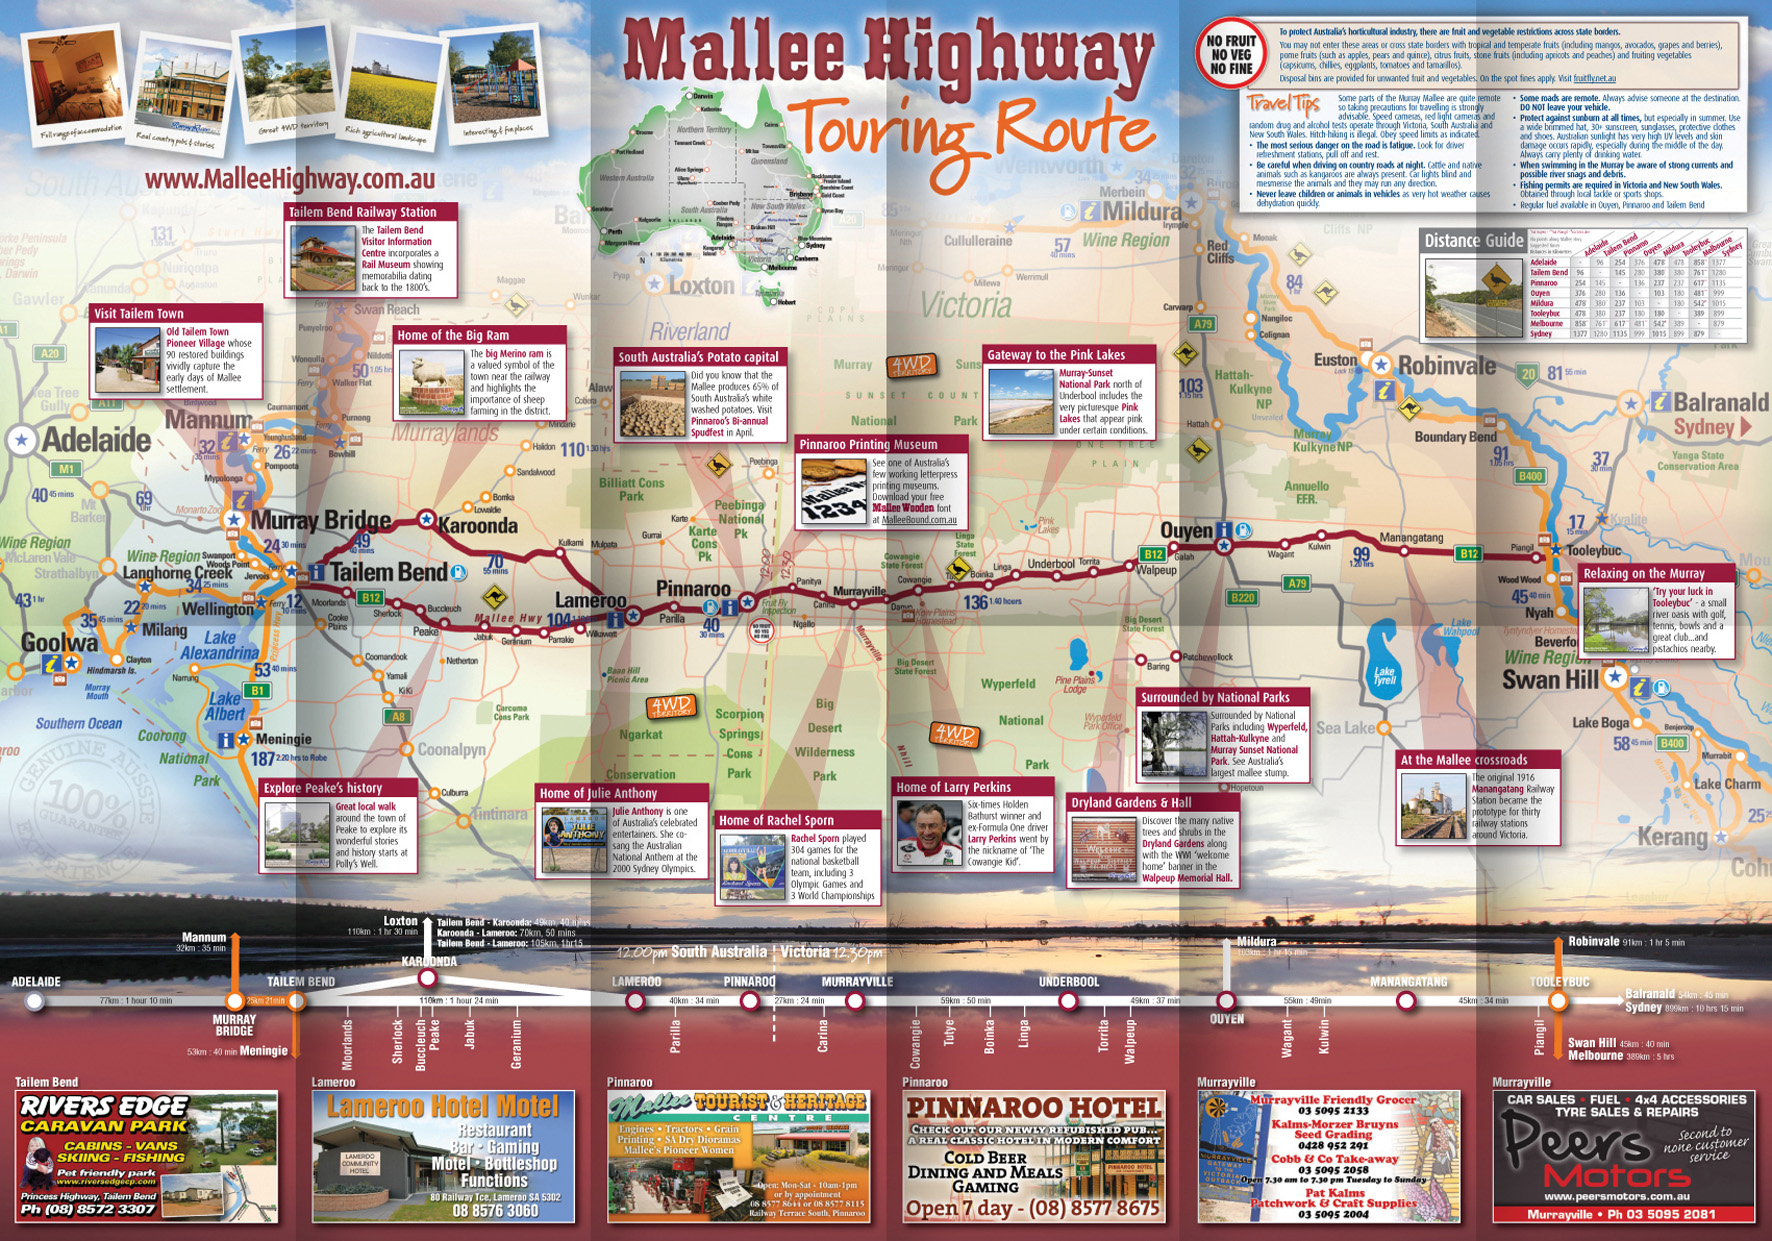 Mallee Highway Touring Route map